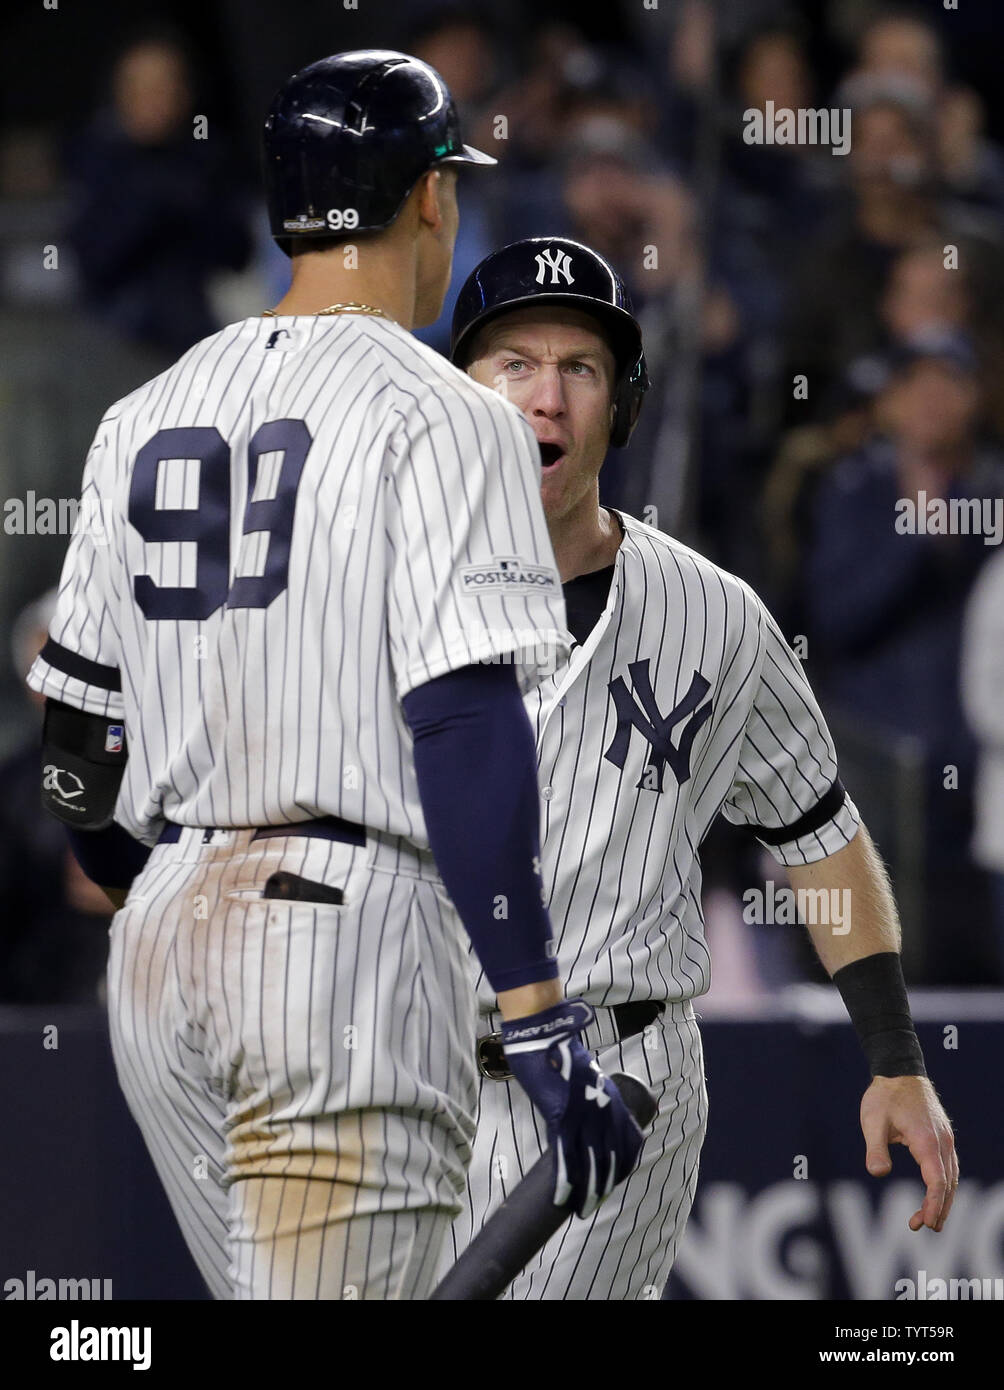 half off 65a64 1e1af New York Yankees third baseman Todd Frazier celebrates with ...